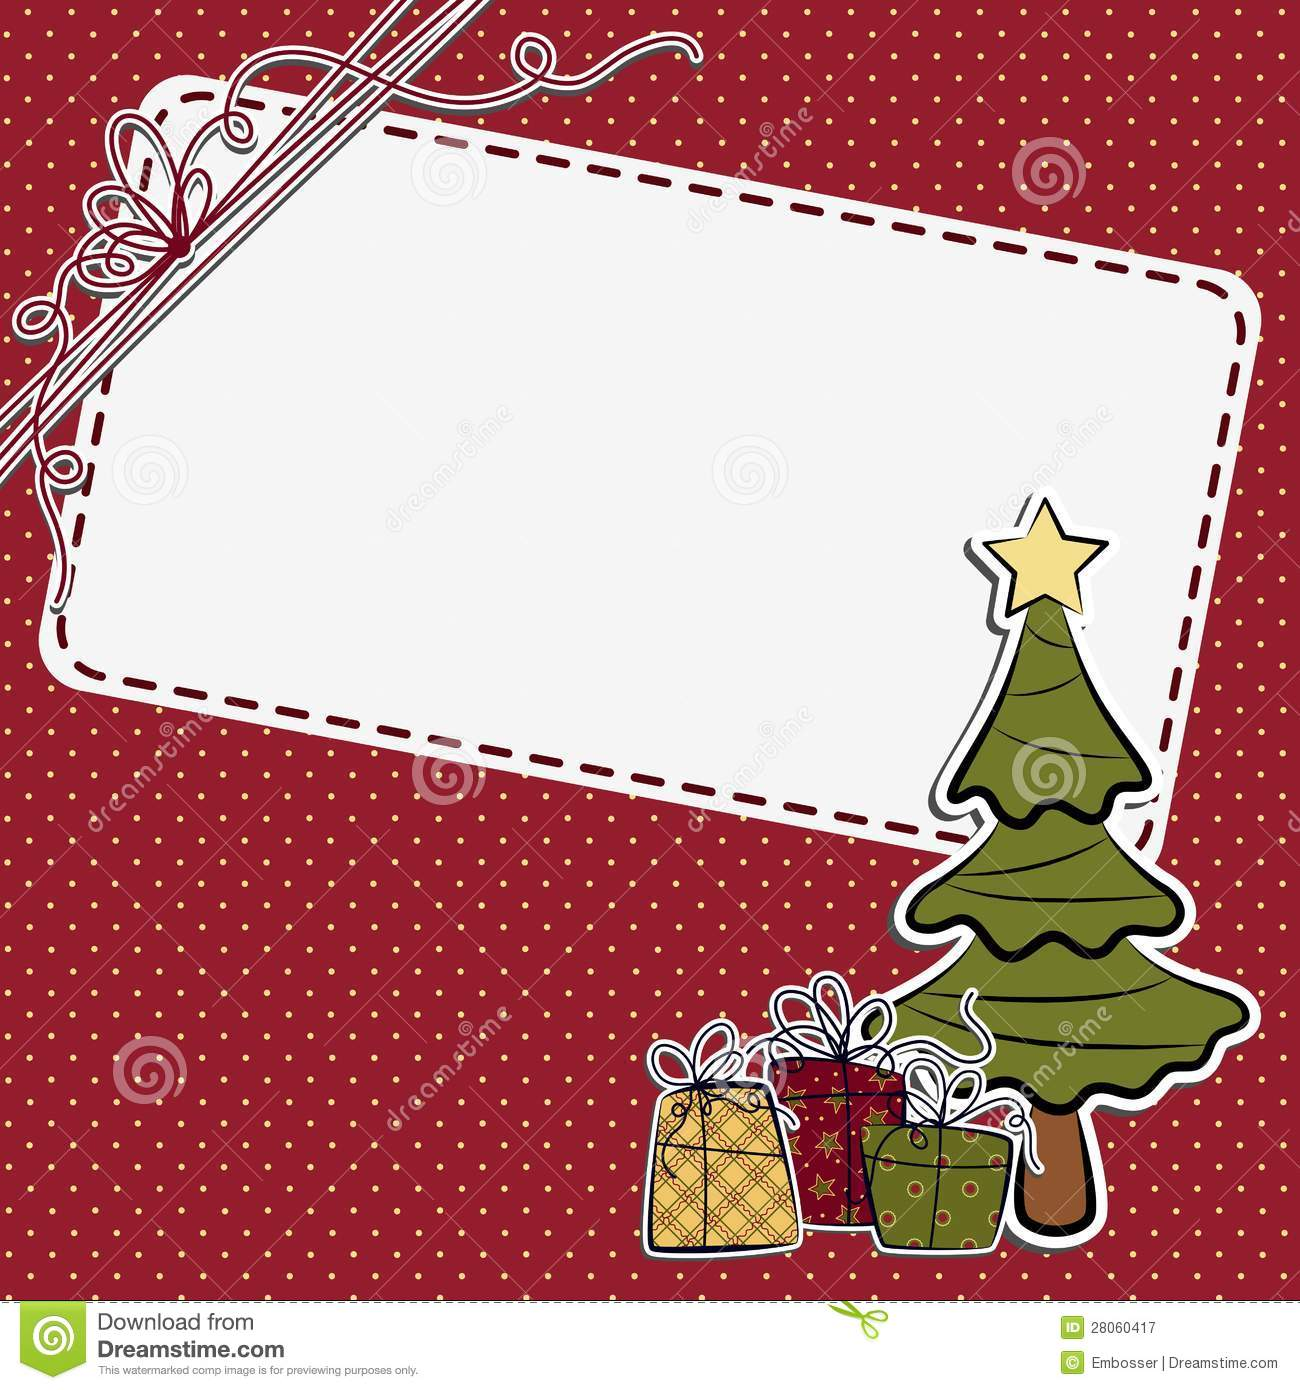 Cute Christmas Postcard Template Stock Vector Illustration Of - Christmas postcard template